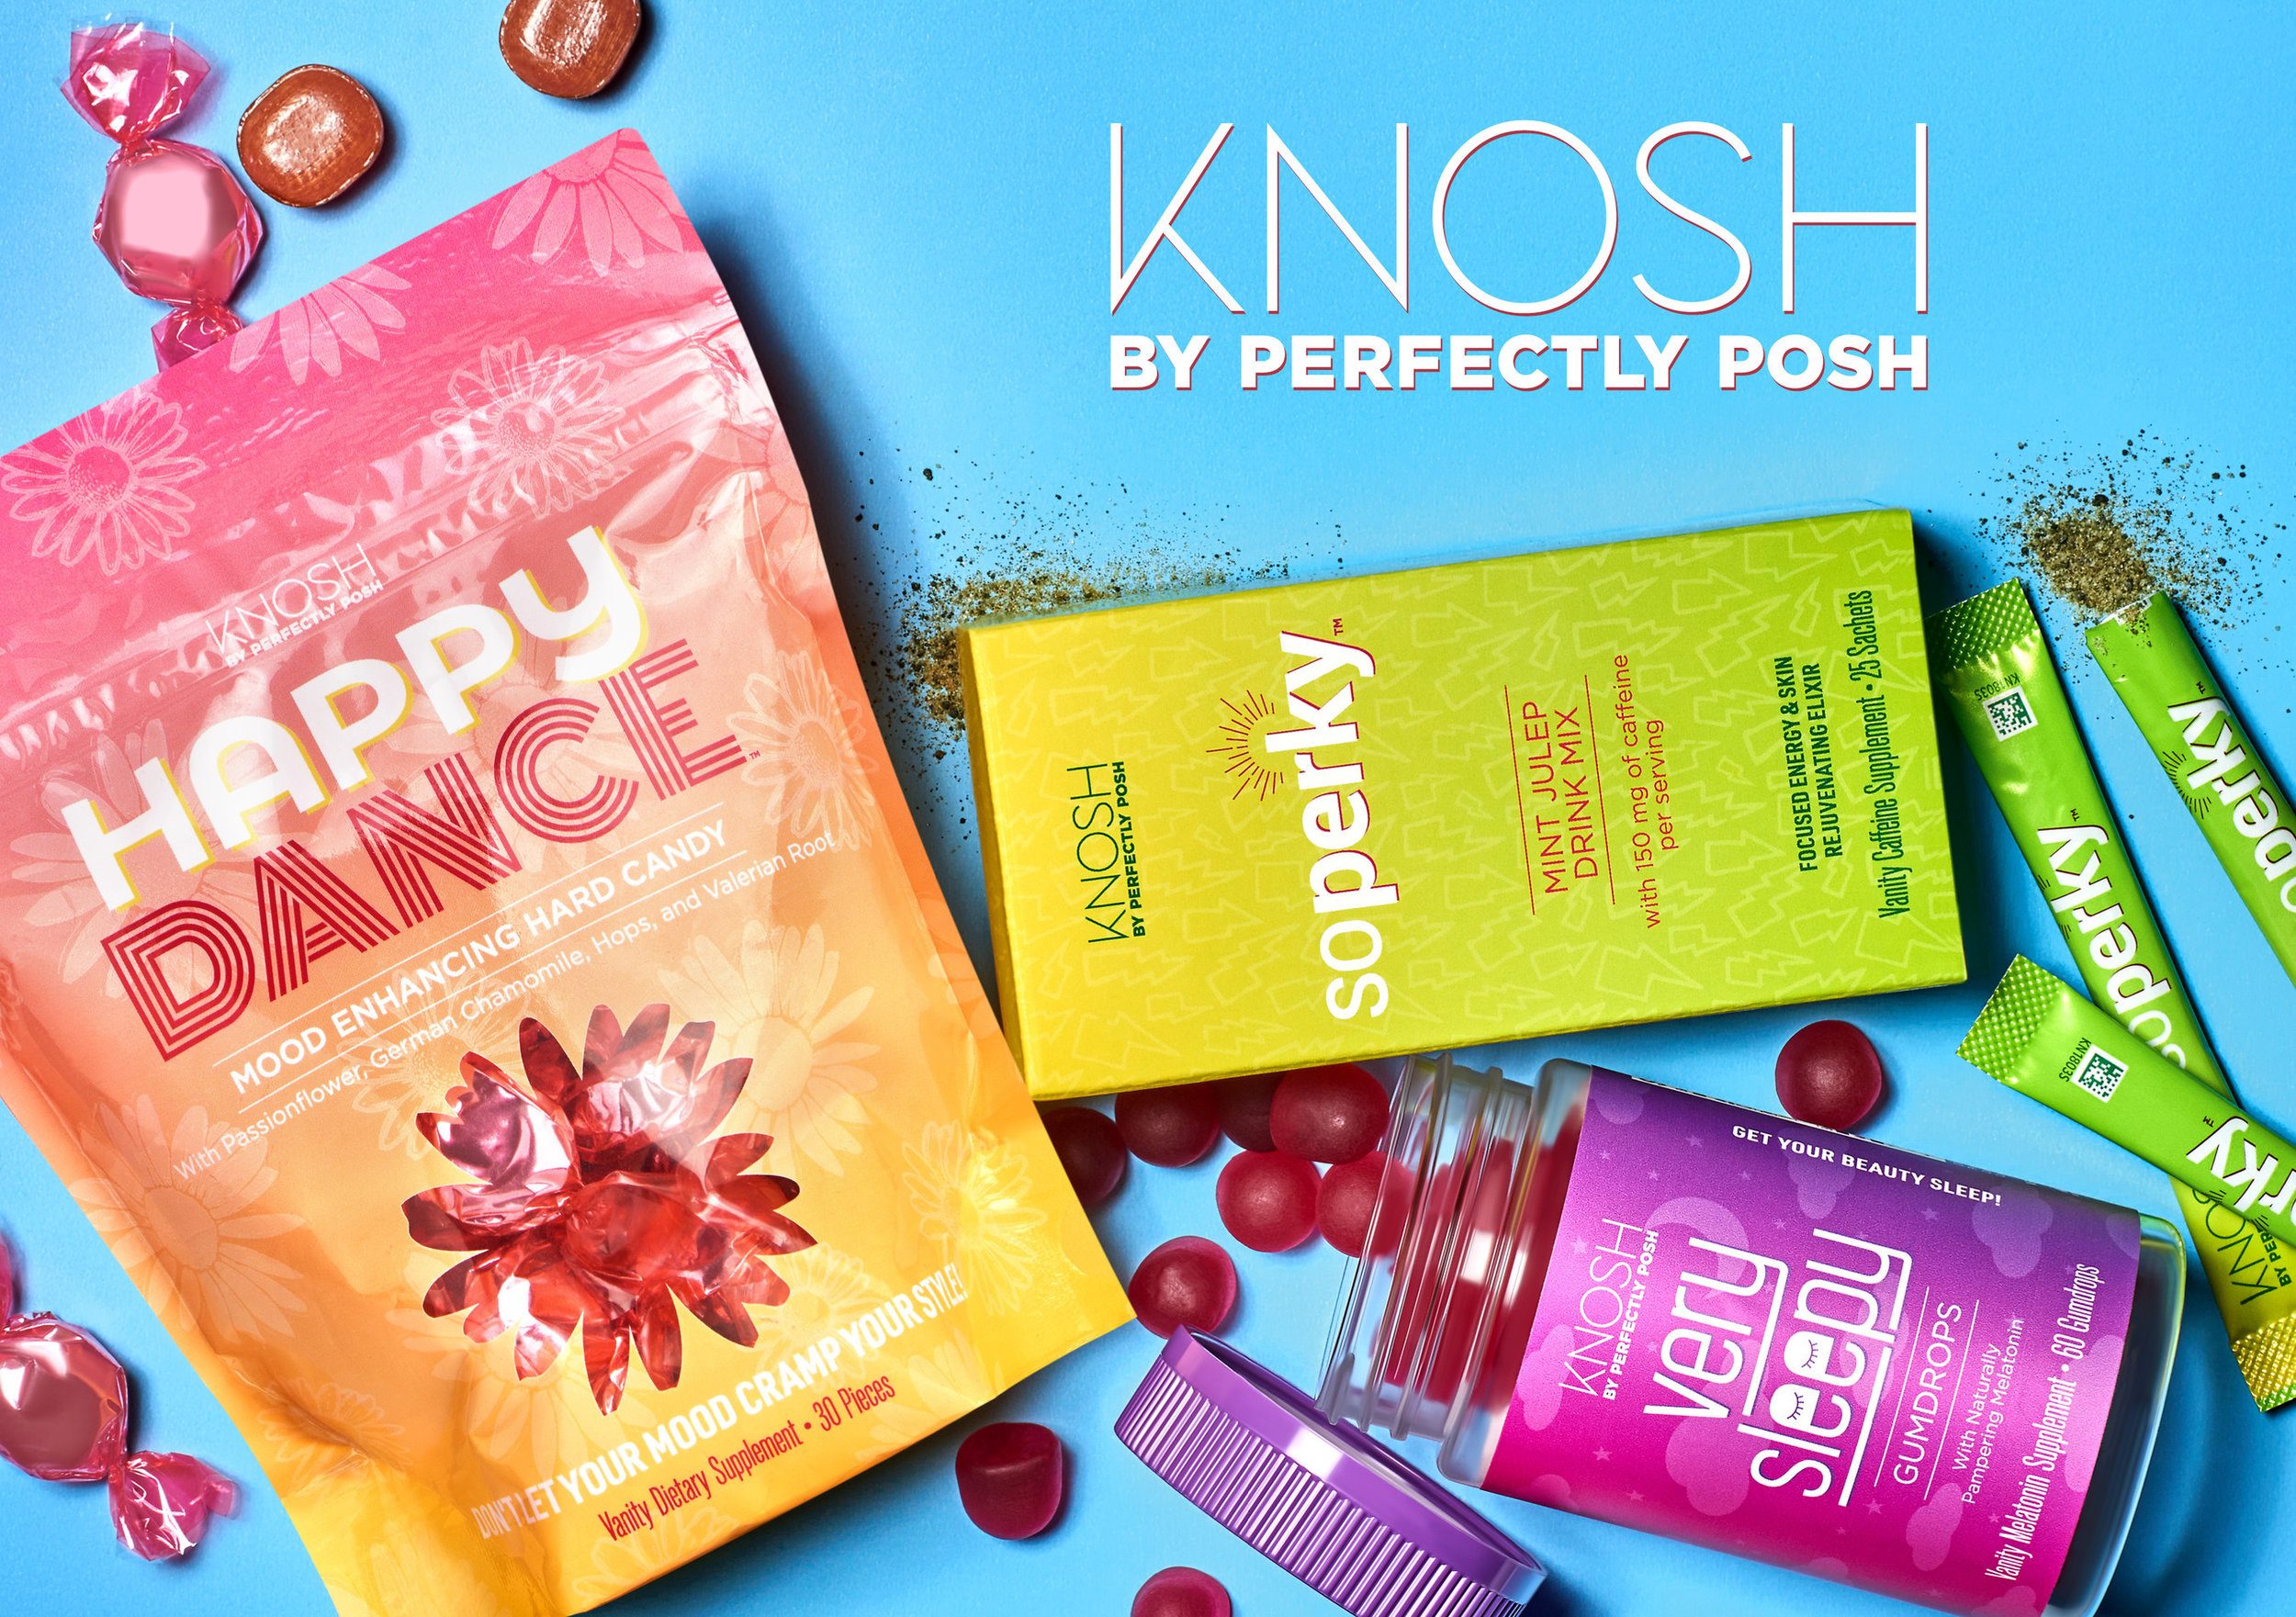 Perfectly Posh Knosh Vanity Supplement Line as featured on Cision PR Newswire